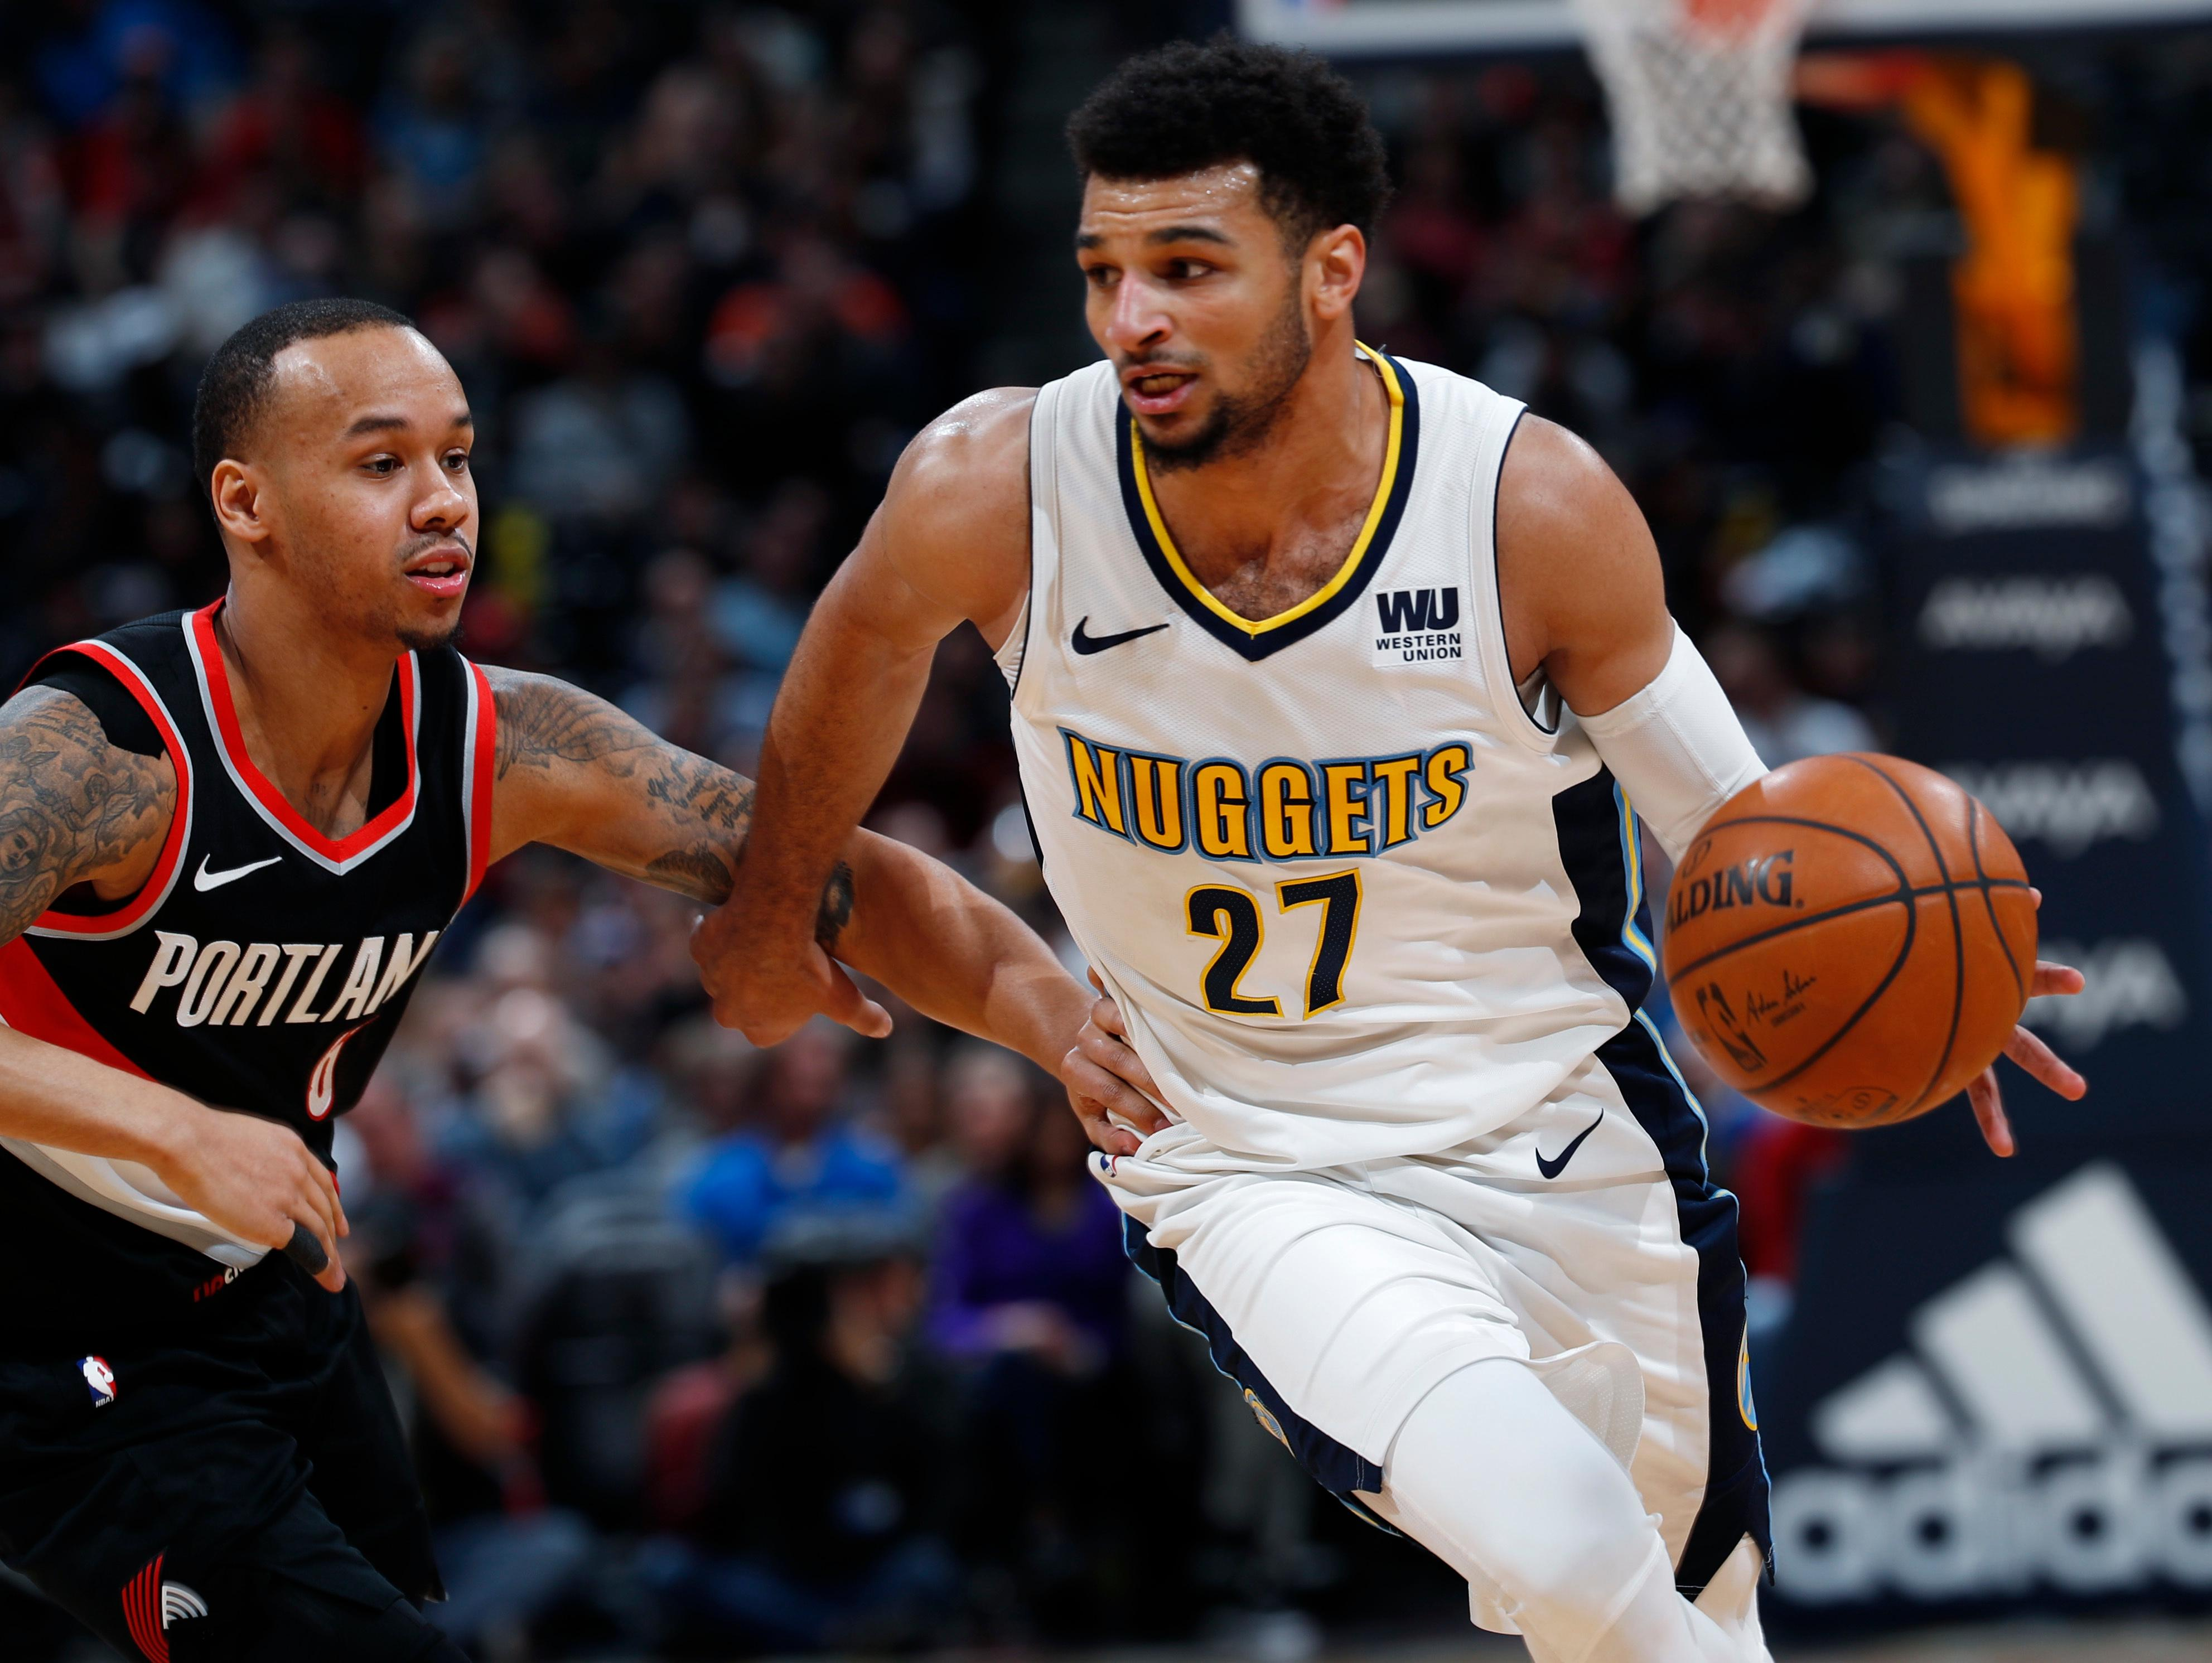 Portland Trail Blazers guard Shabazz Napier, left, defends as Denver Nuggets guard Jamal Murray drives the lane to the rim in the first half of an NBA basketball game Monday, Jan. 22, 2018, in Denver. (AP Photo/David Zalubowski)